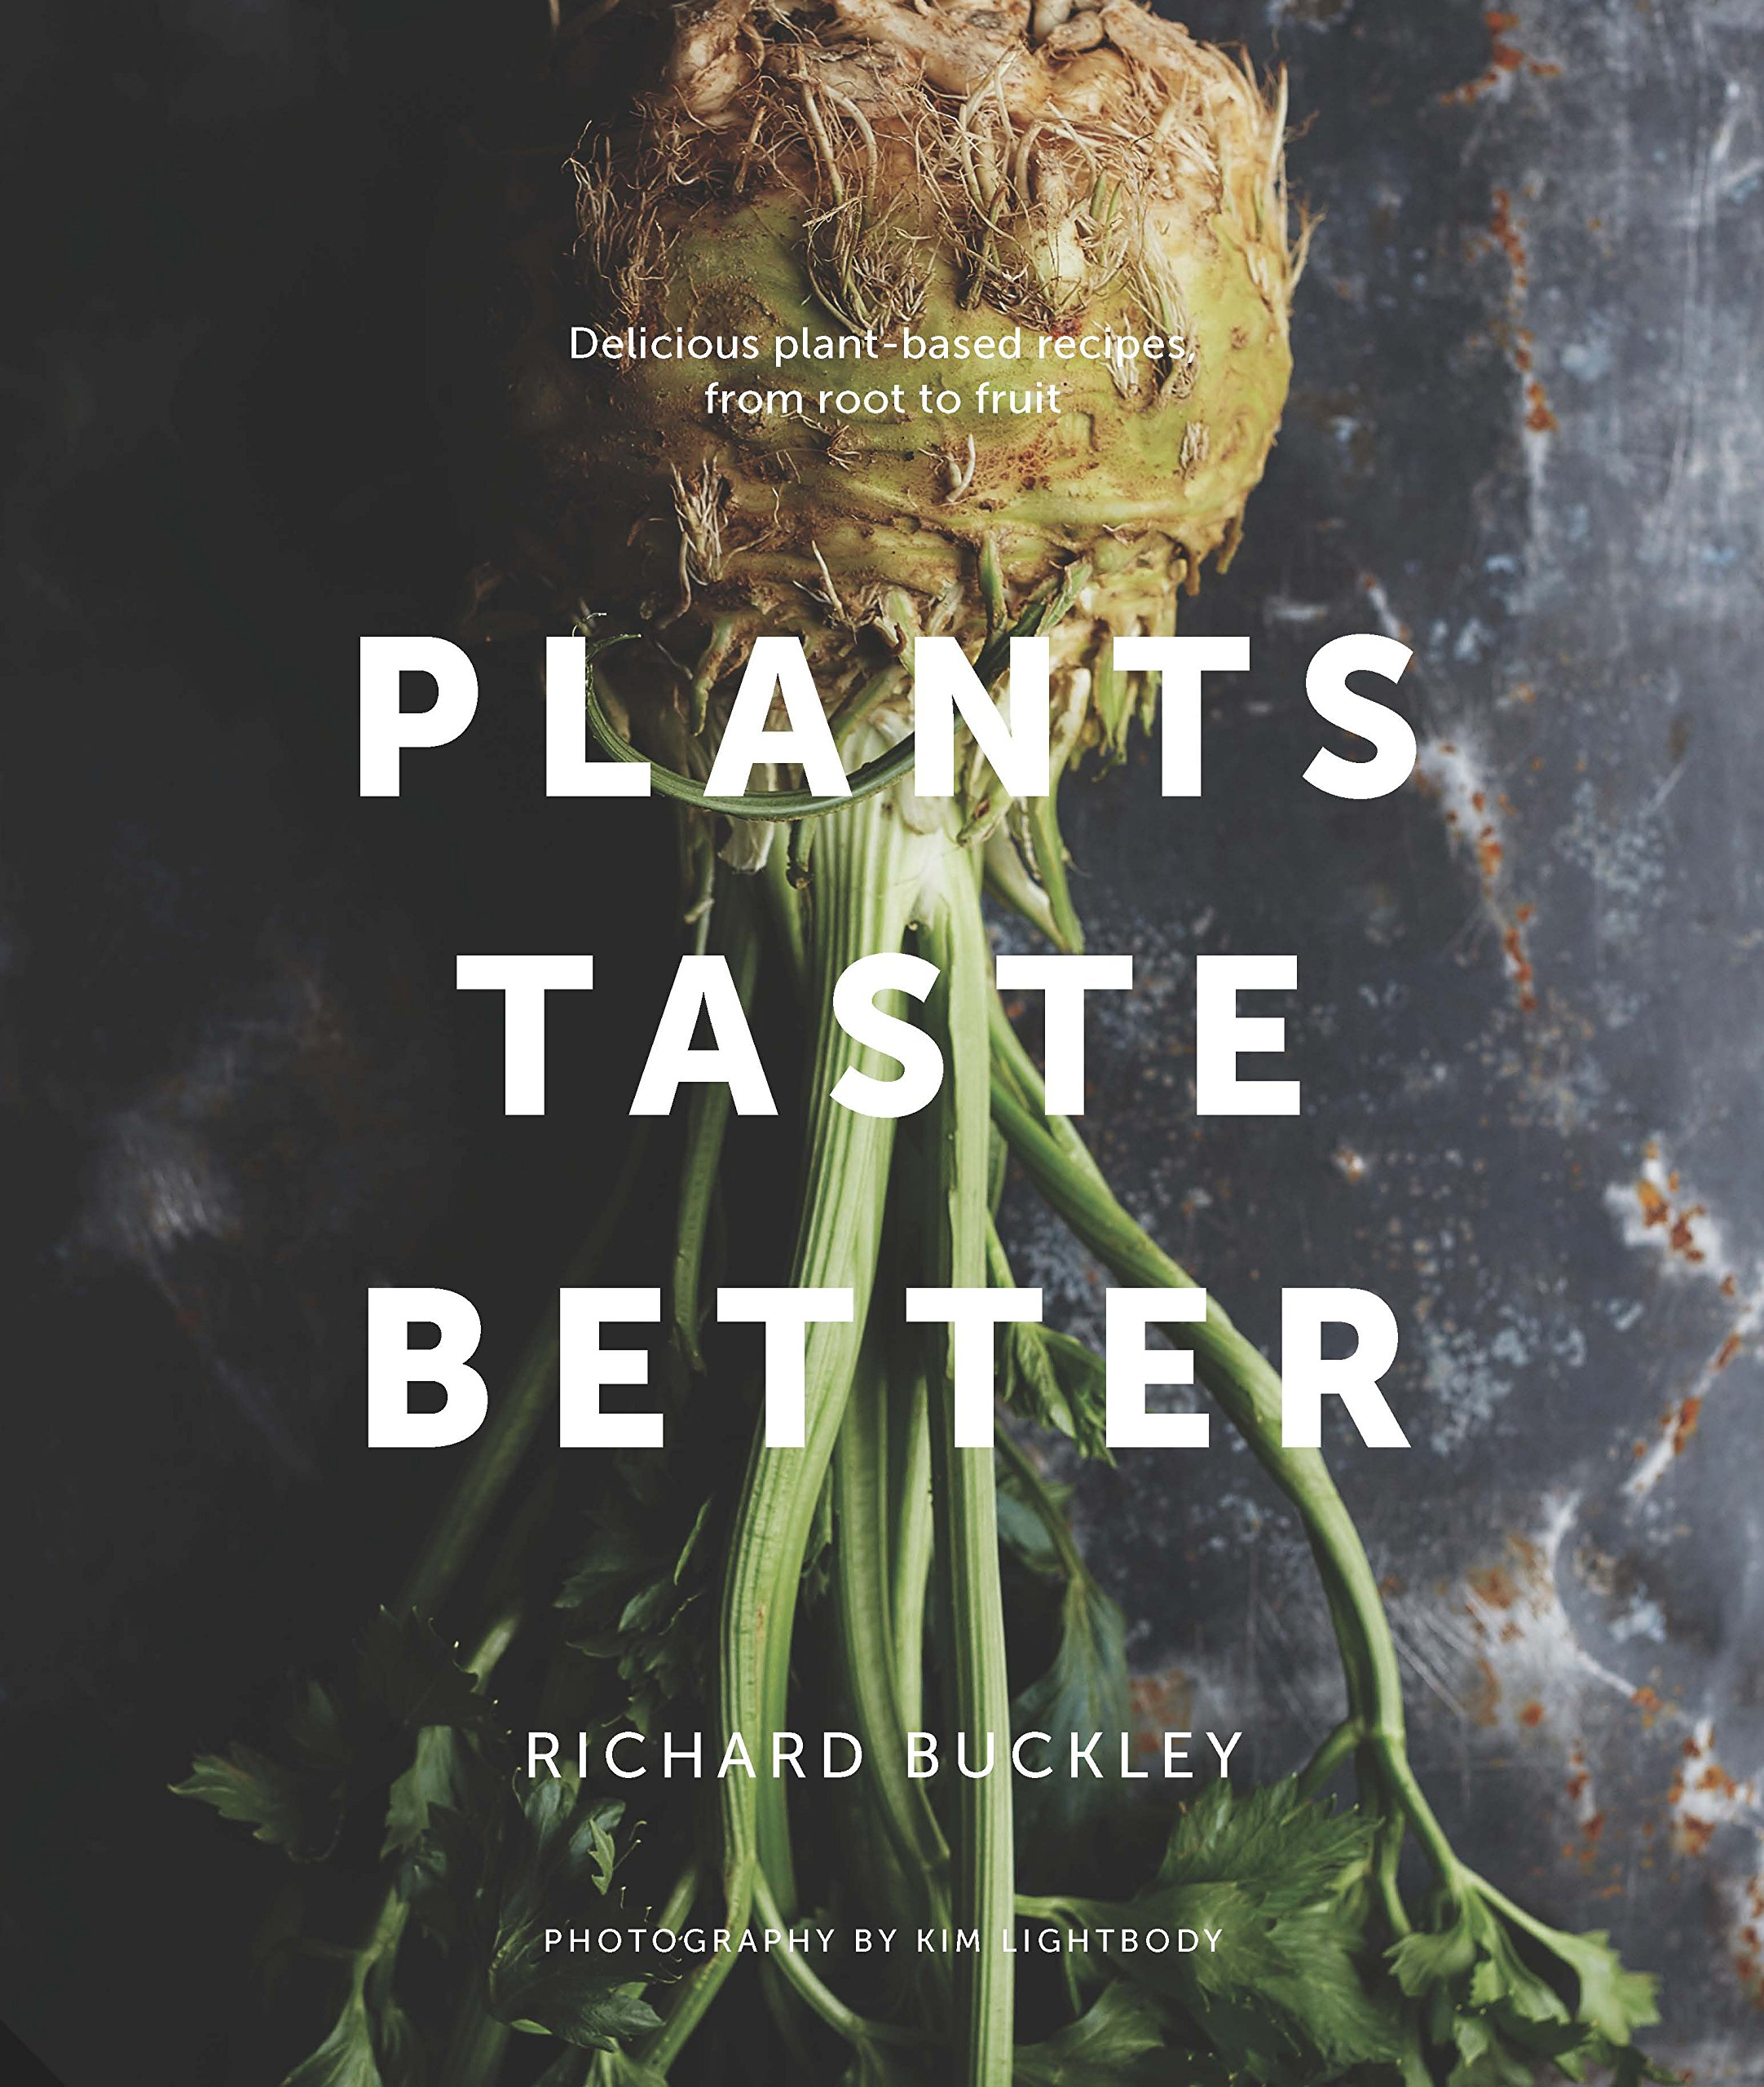 Cookbook Plants taste better